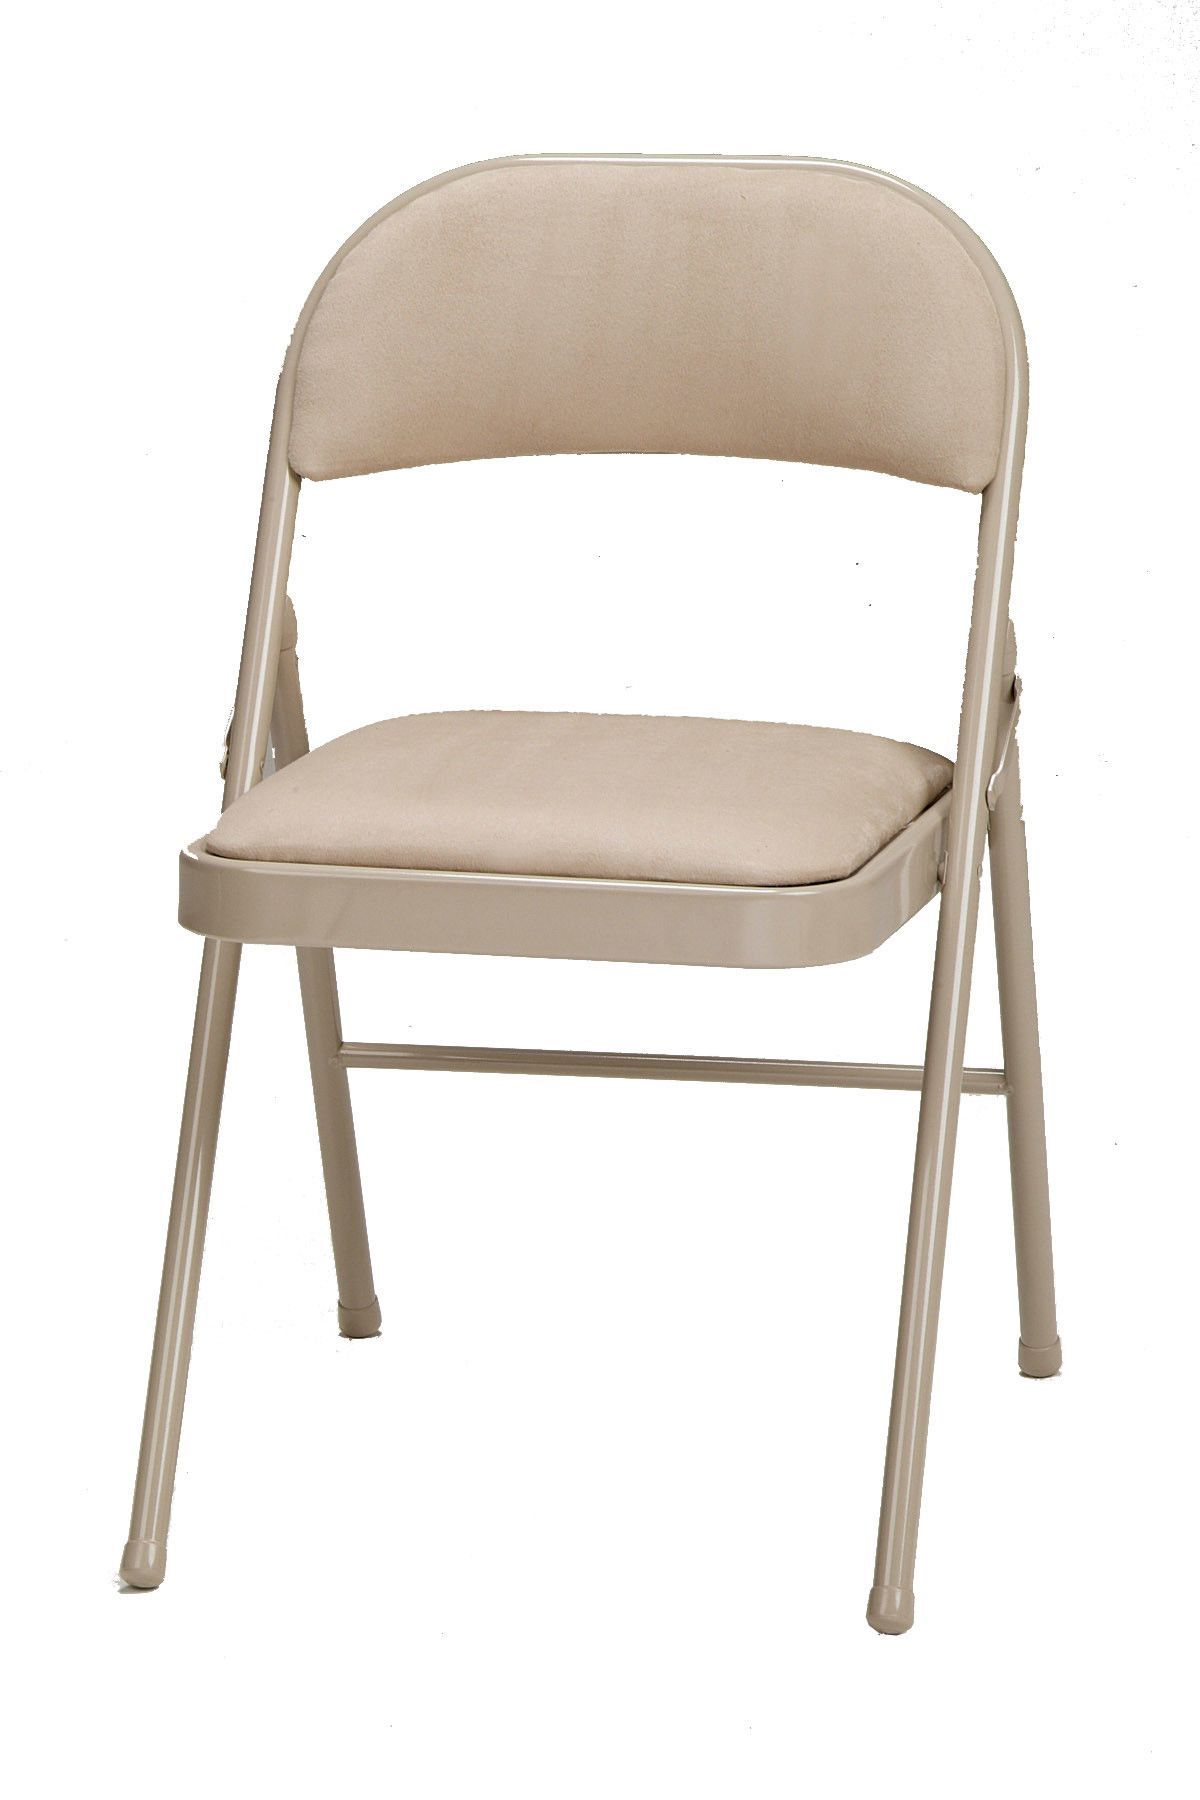 Awesome Deluxe Fabric Padded Folding Chair Products Padded Lamtechconsult Wood Chair Design Ideas Lamtechconsultcom